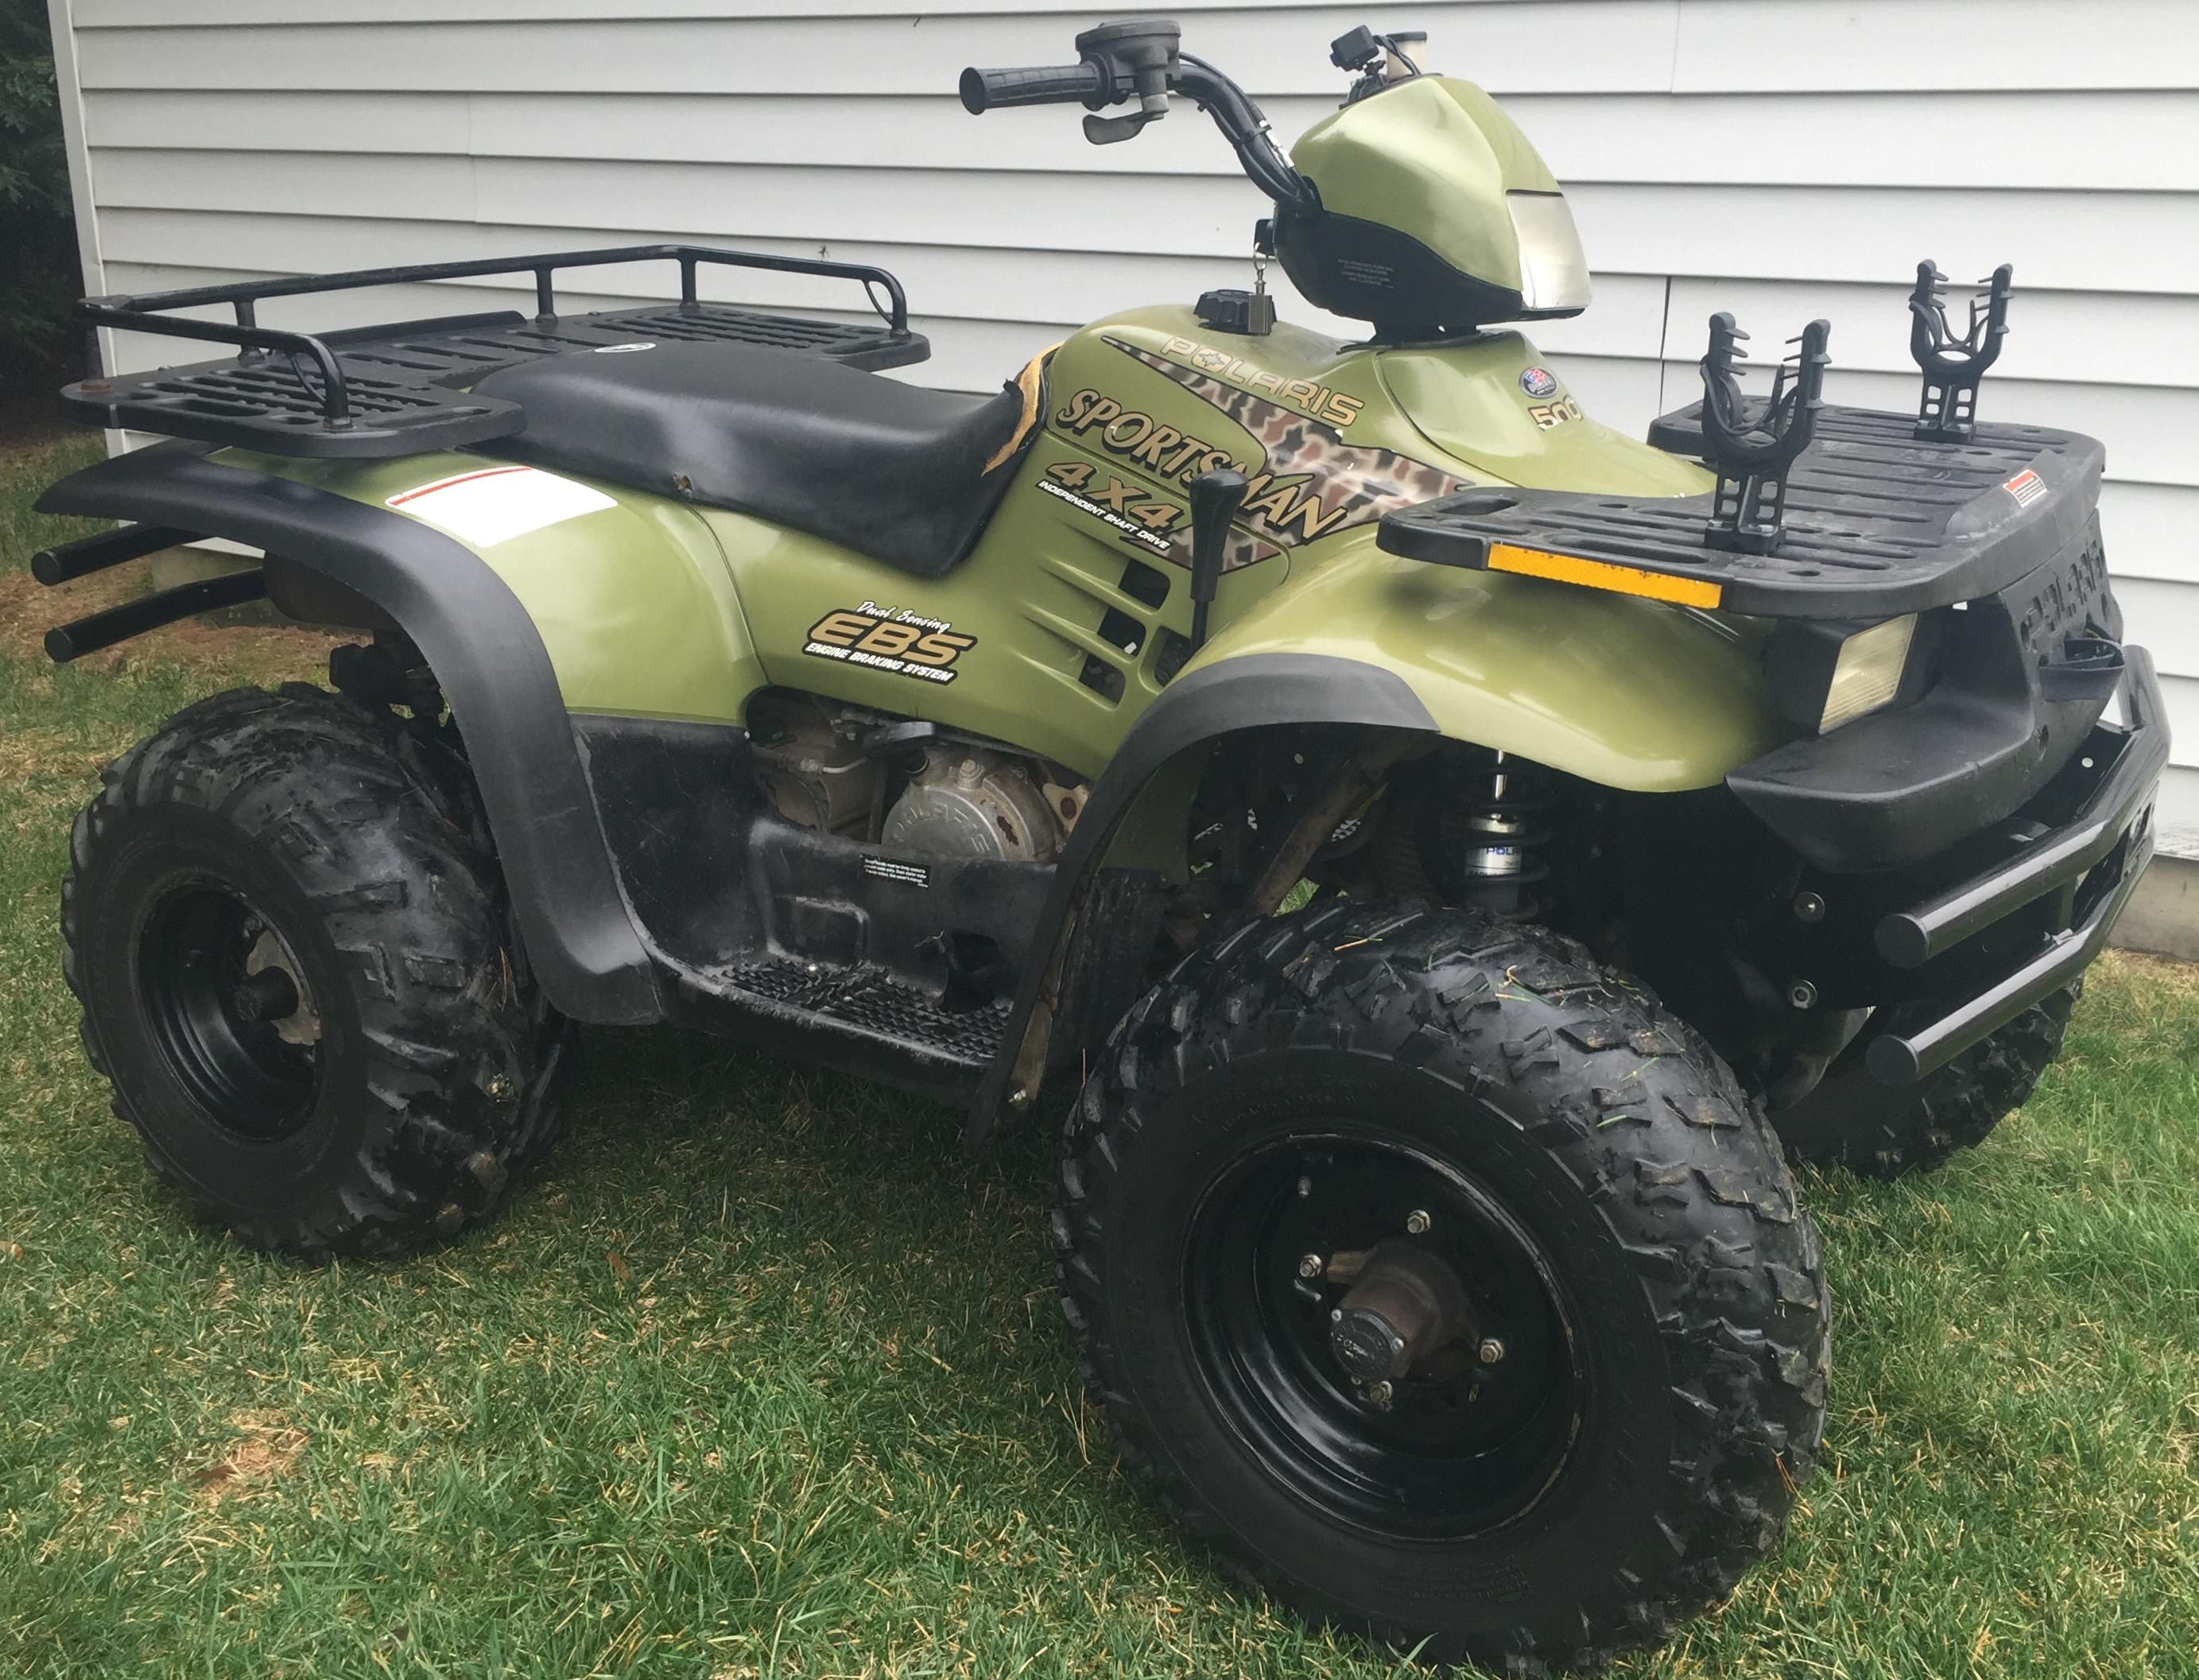 99 polaris sportsman 500 brakes locked page 2 polaris atv forum. Black Bedroom Furniture Sets. Home Design Ideas